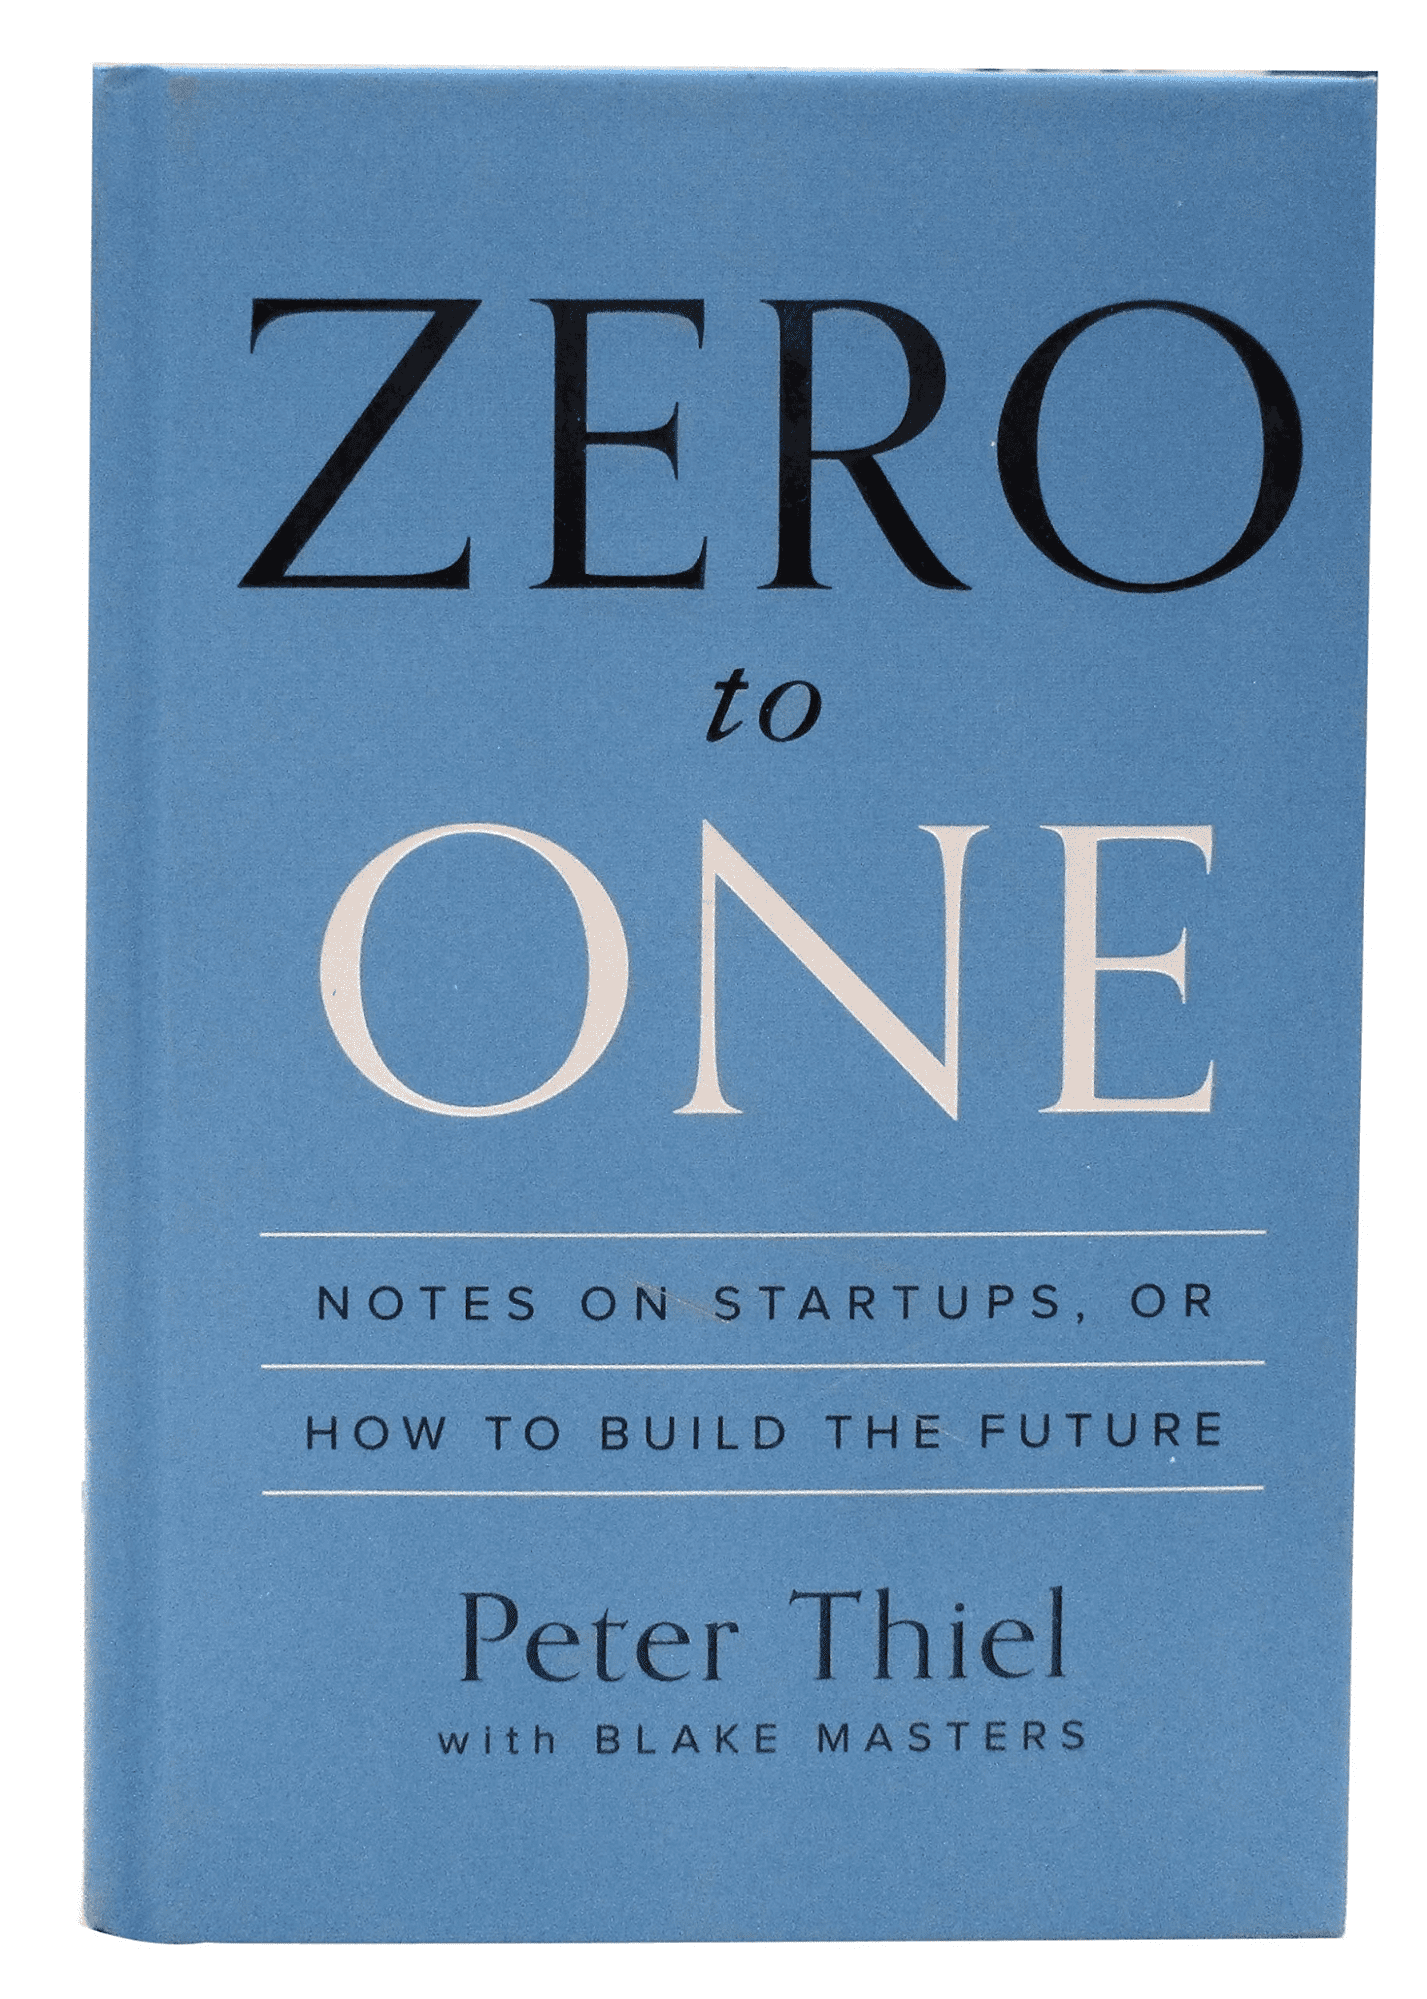 Zero to One by Peter Thiel book cover